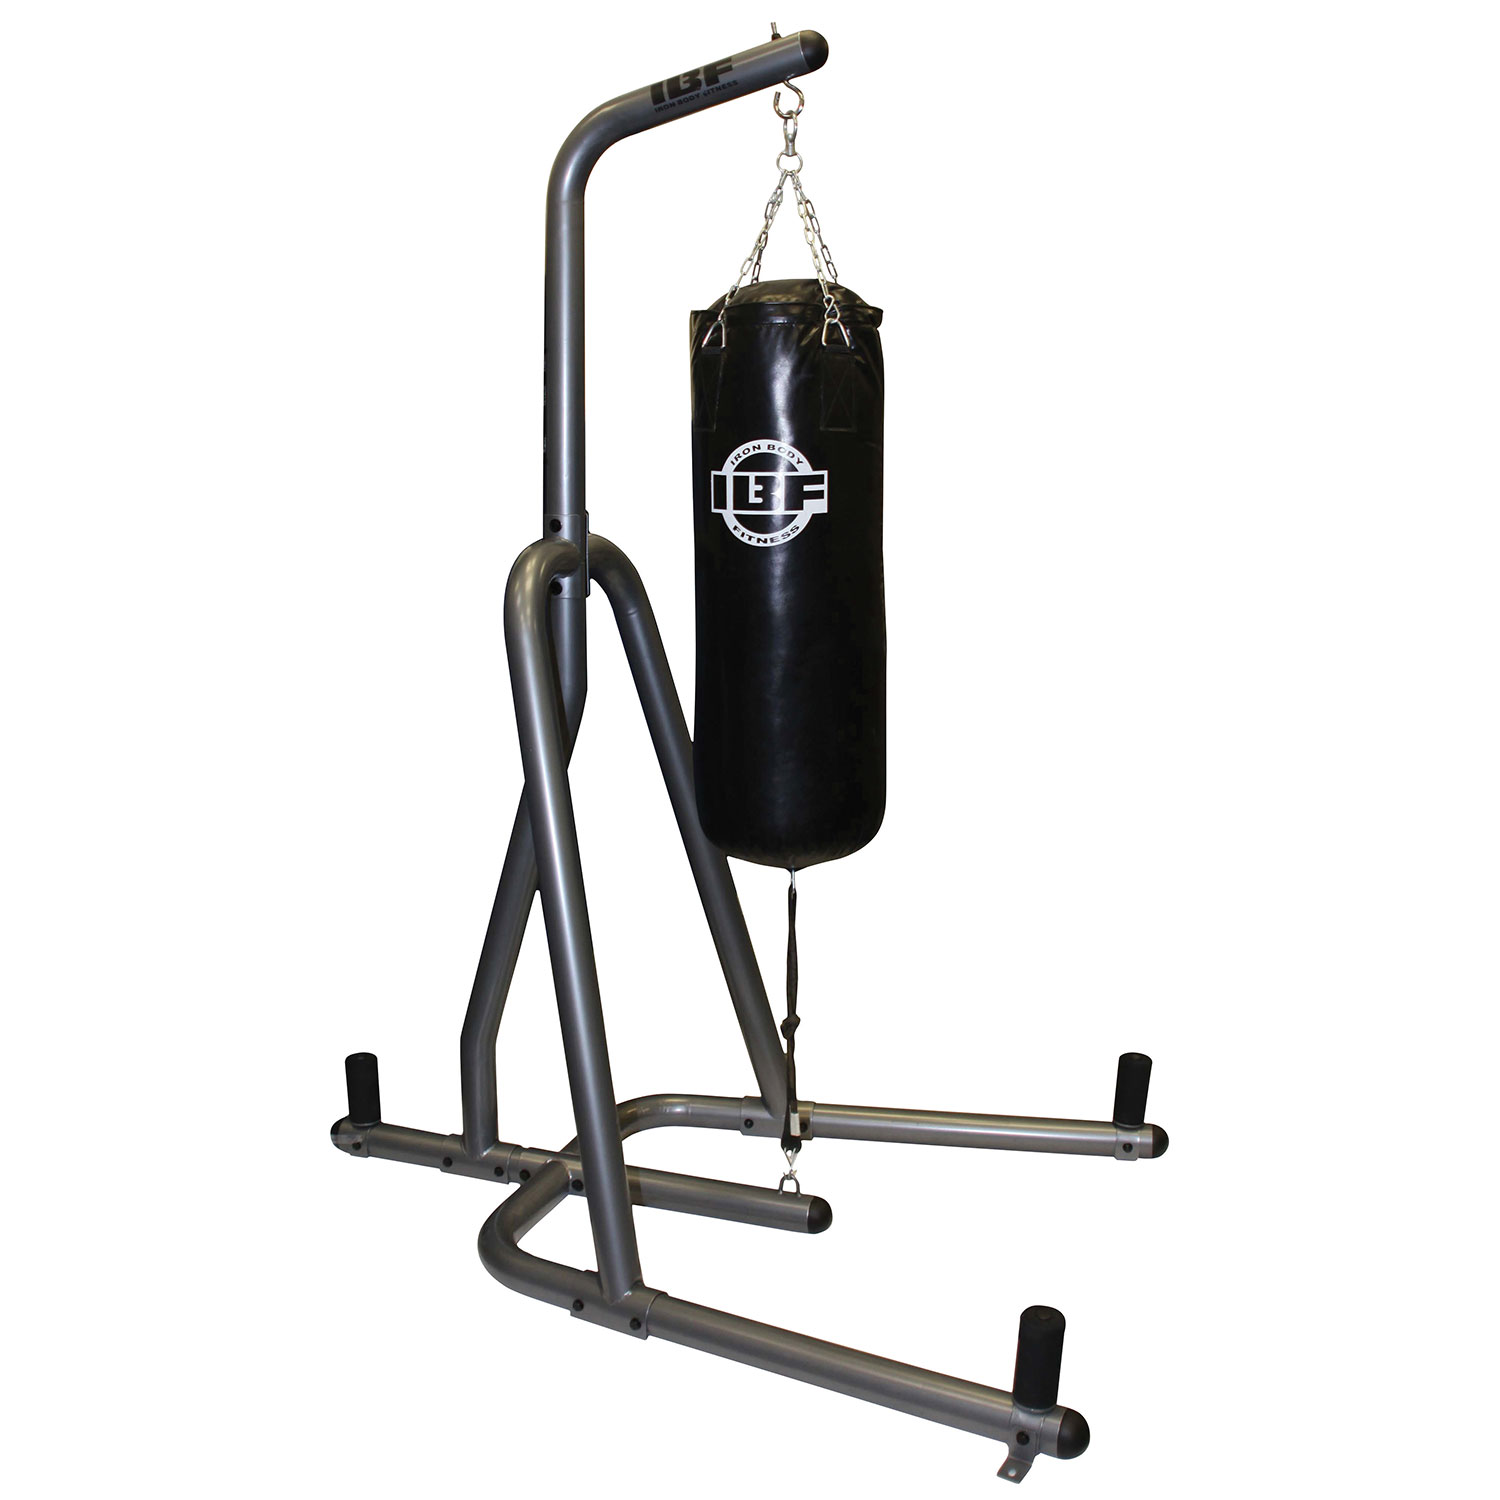 Iron Body Fitness 100 lb Heavy Bag Stand - Graphite  Black - Online Only 044bf49da